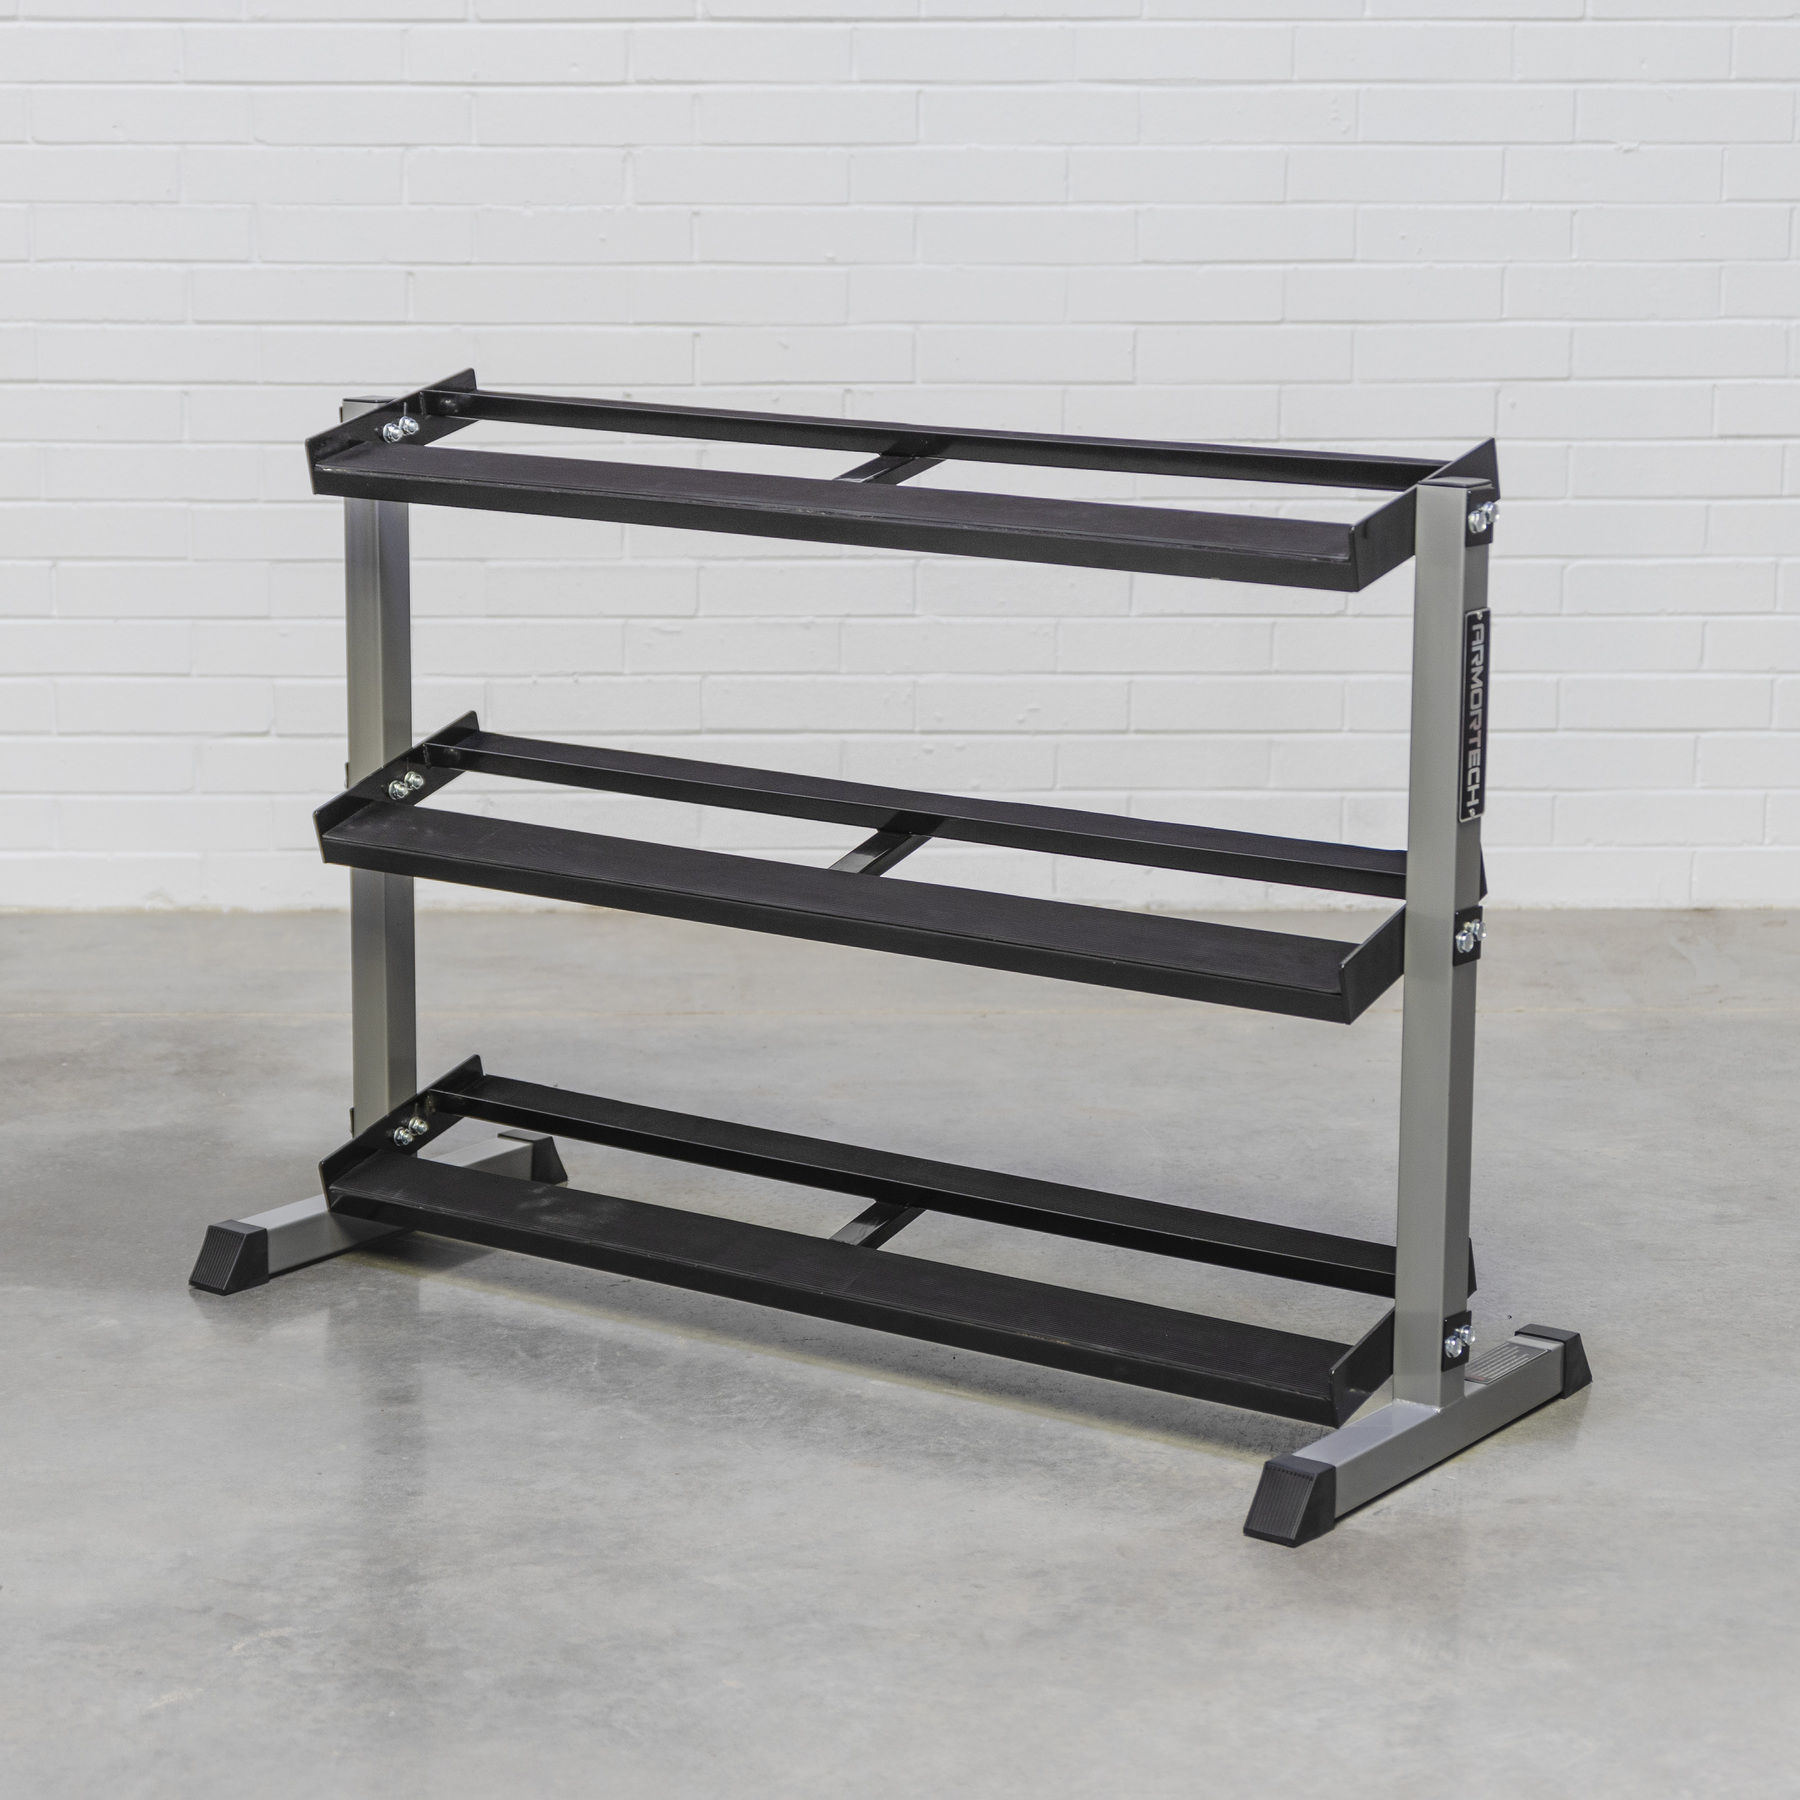 Osborne Park Storage 3 Tier Dumbbell Rack Armortech